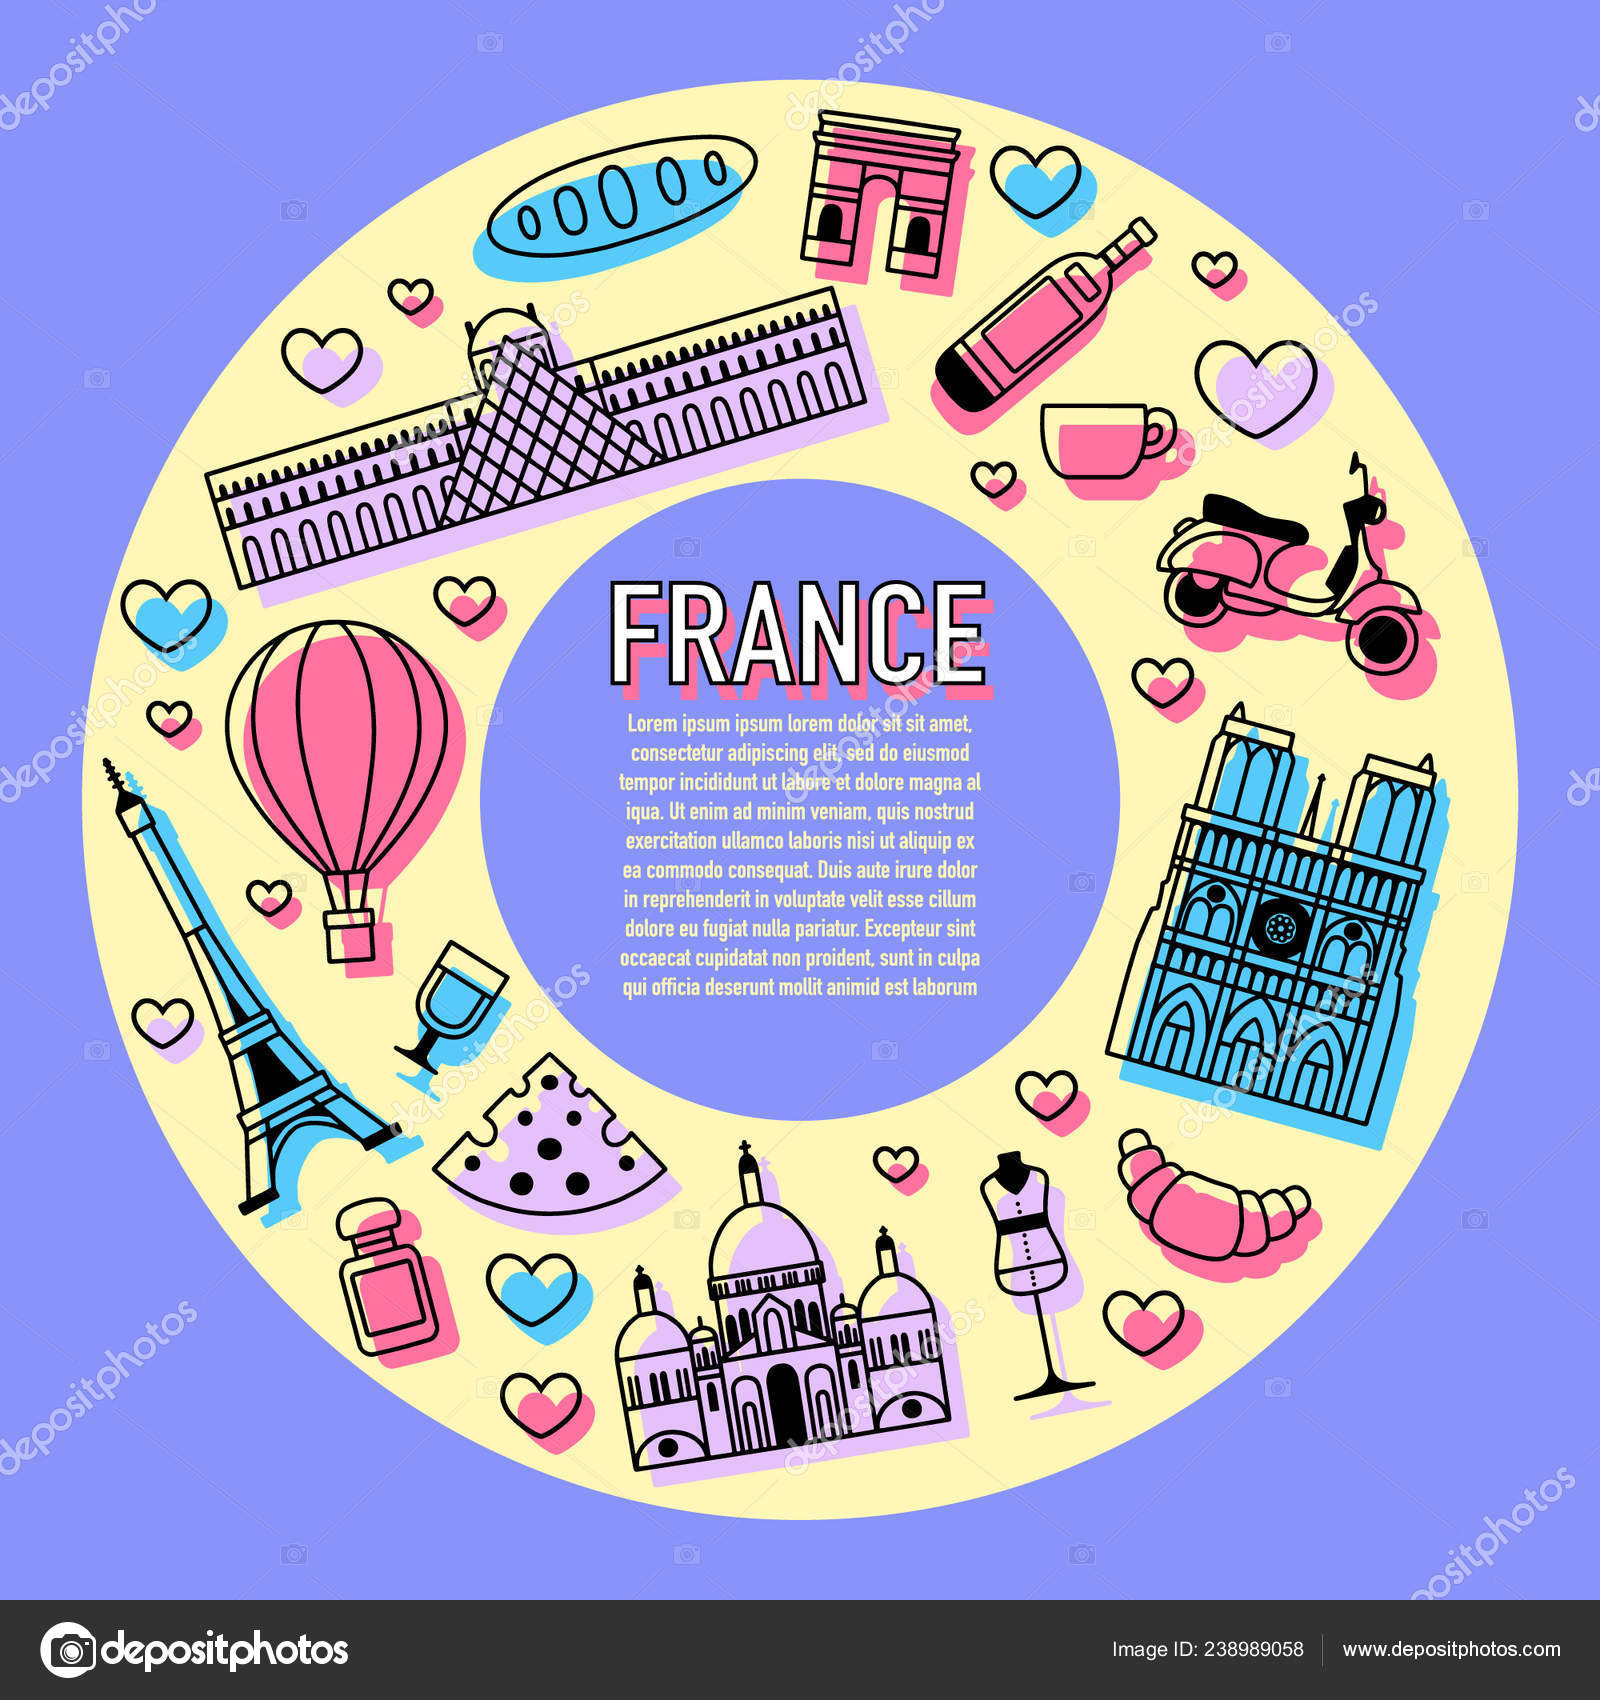 Map Of France Cartoon.France Cartoon Travel Vector Map French Symbols Other Decorative